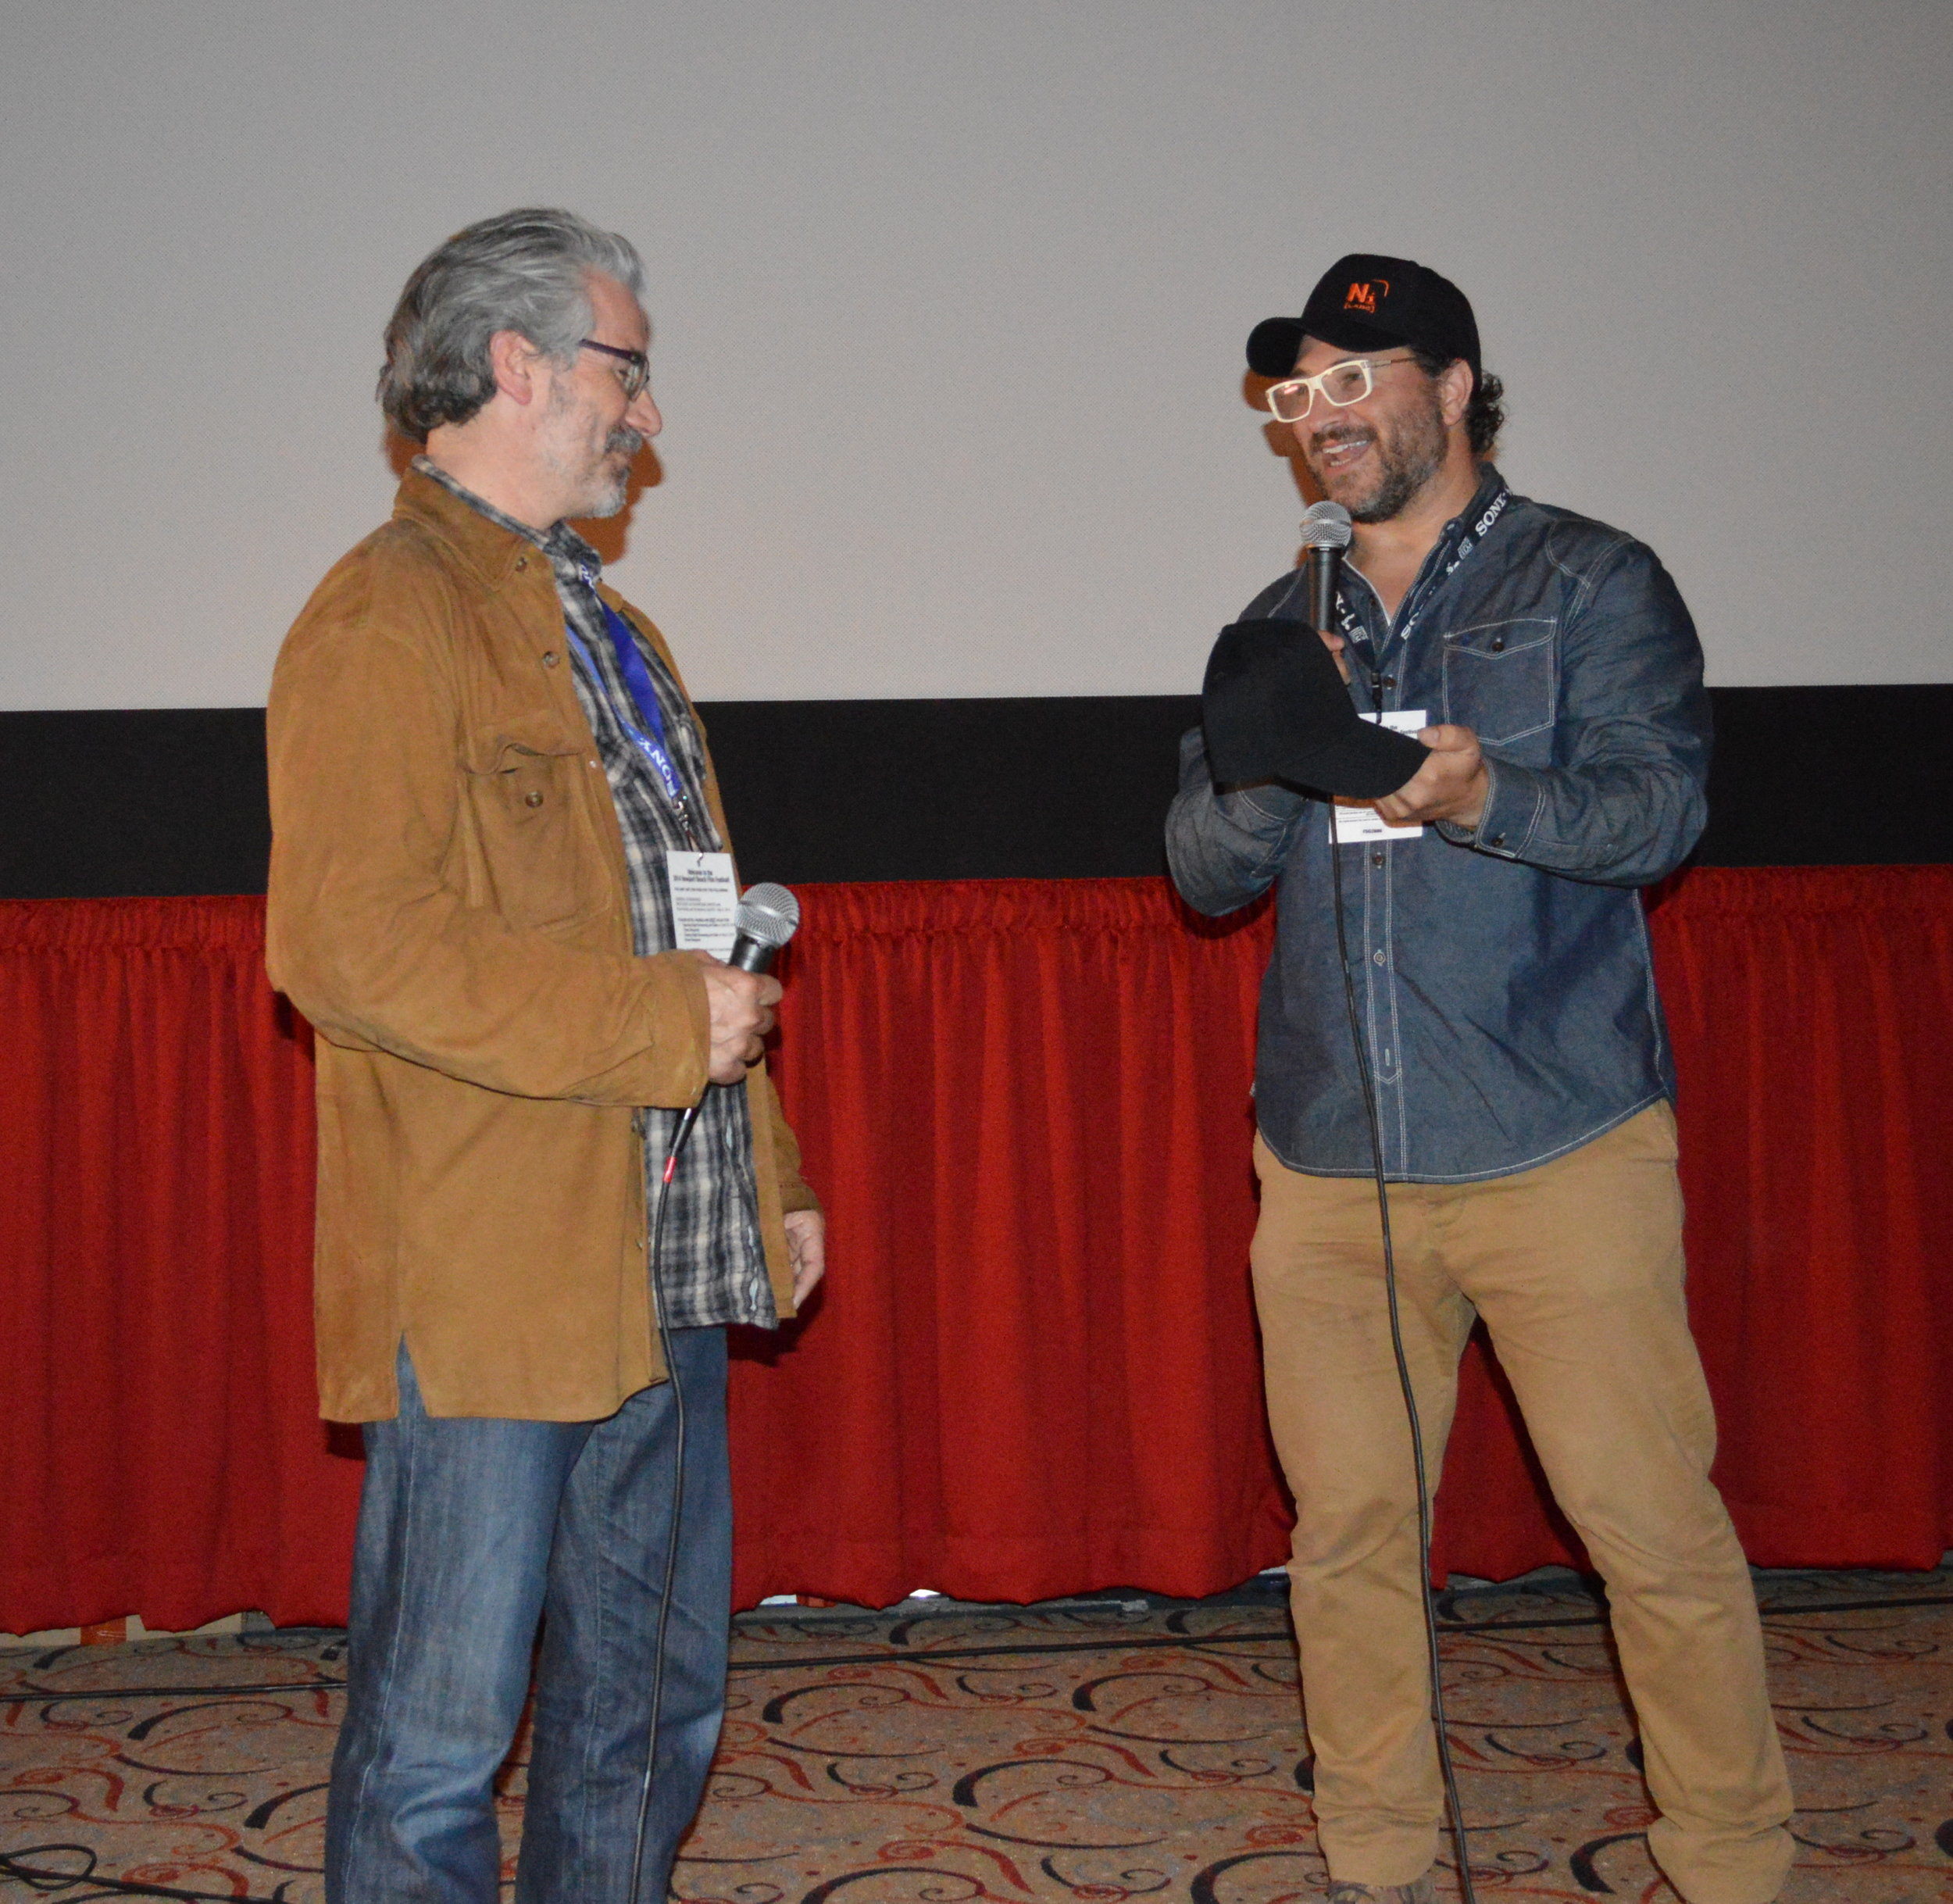 Director, Paul Lazarus and Moderator, Elliot Kotek